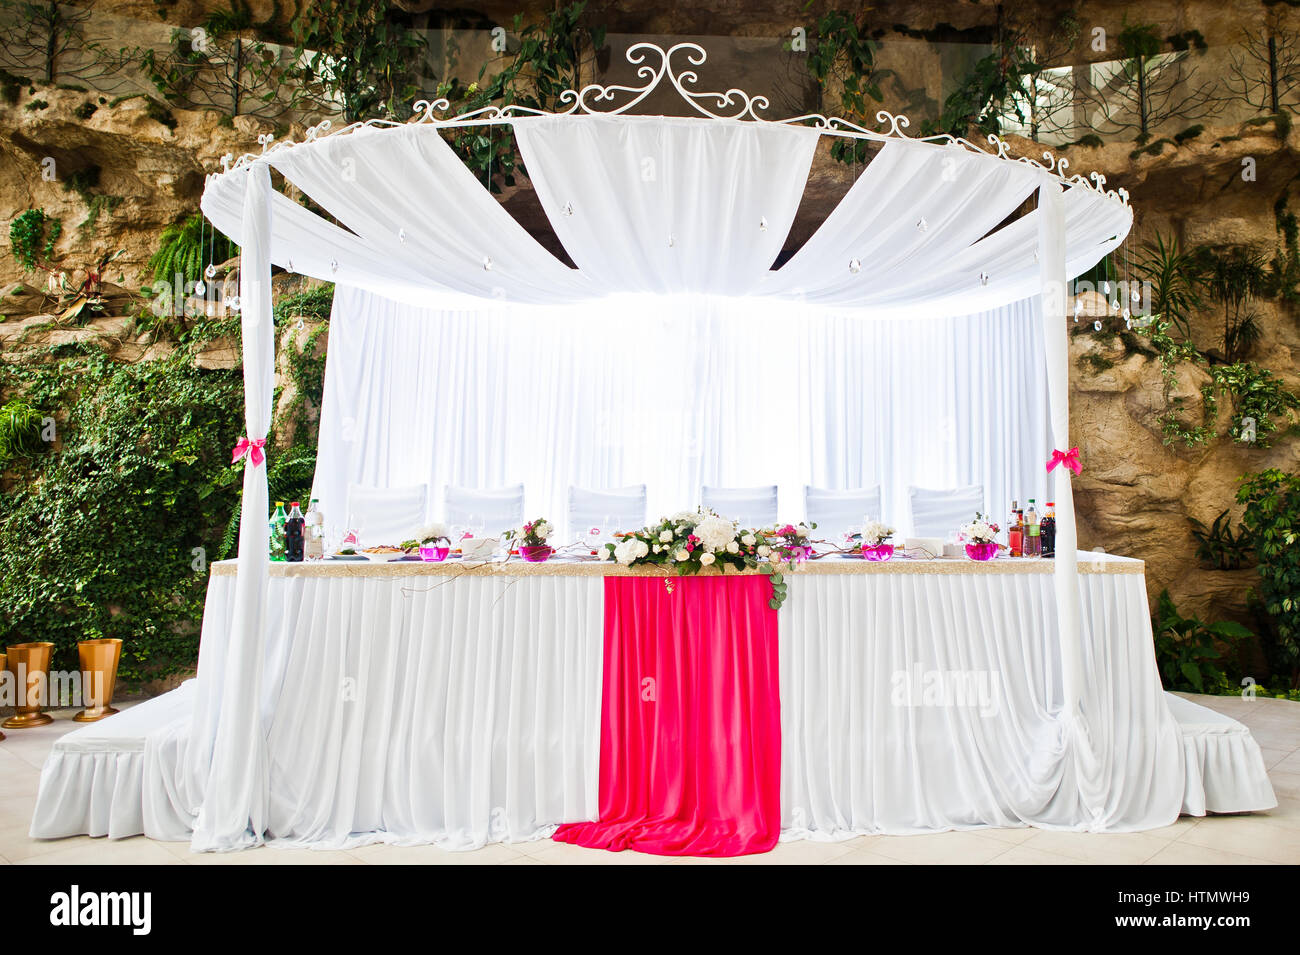 flower decoration for wedding reception.htm royal wedding arch with table newlyweds at hall stock photo  royal wedding arch with table newlyweds